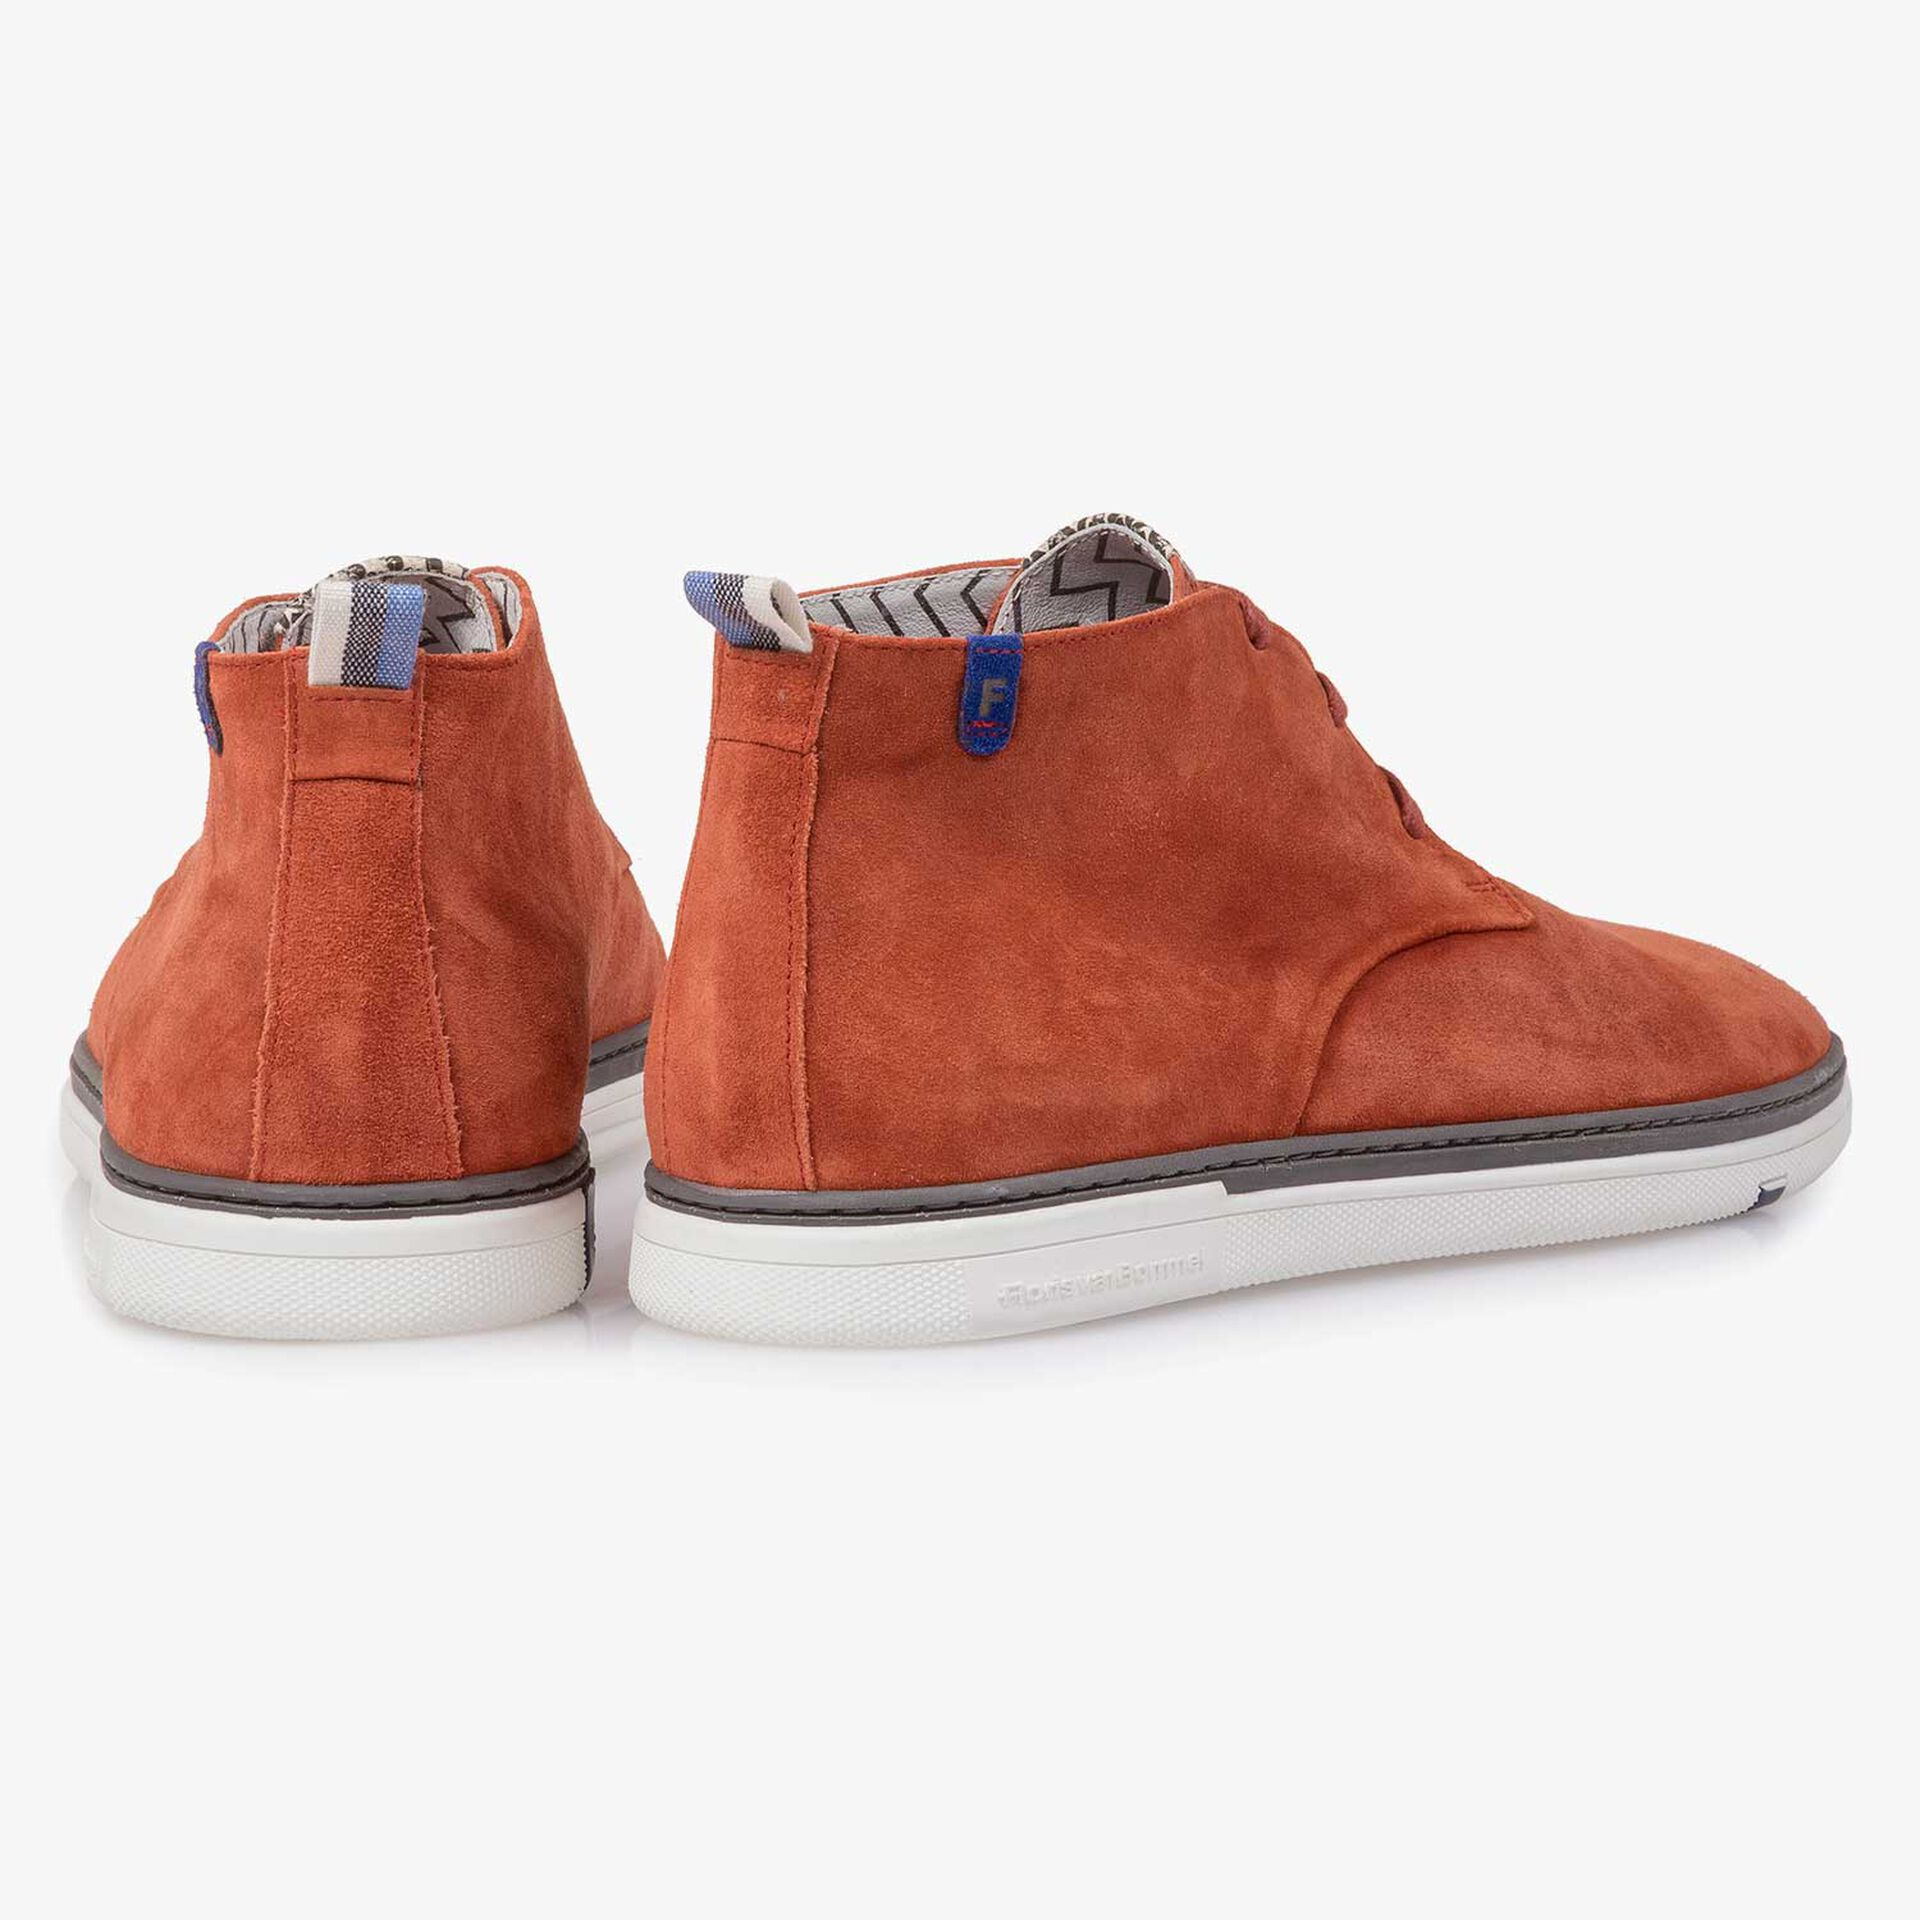 Orange-coloured slightly buffed suede leather boot